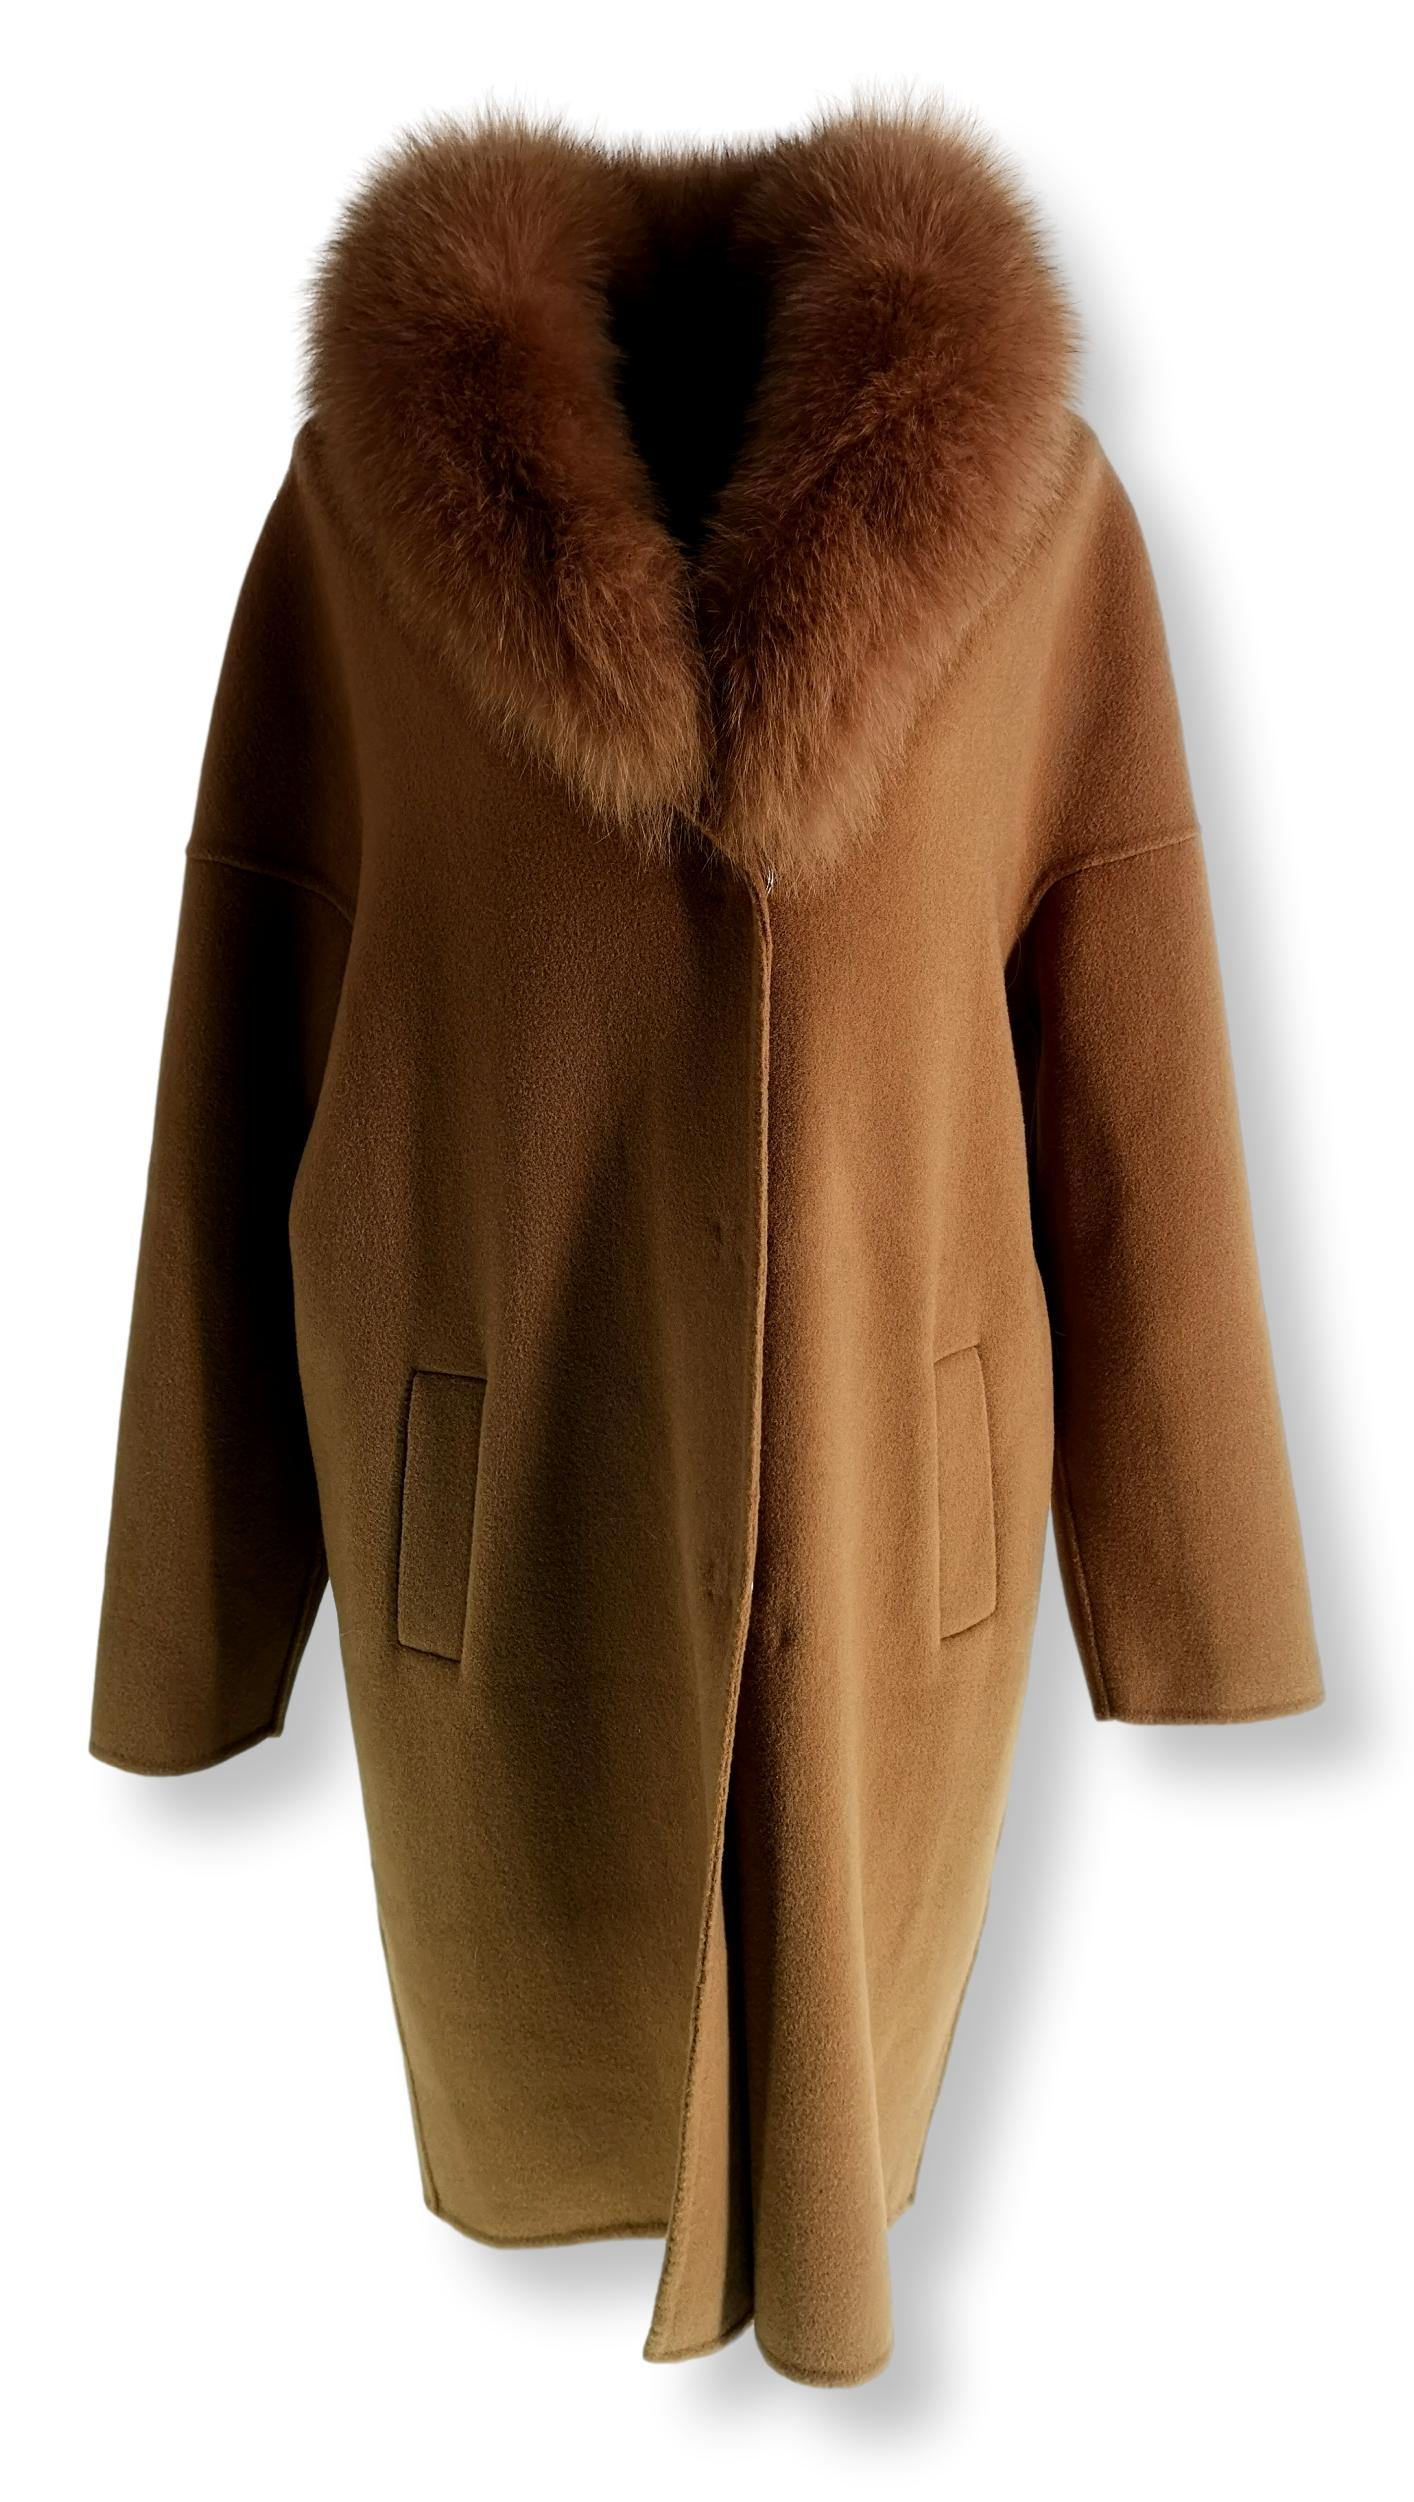 Afraic, 95 cm. - Wool - Women - Camel